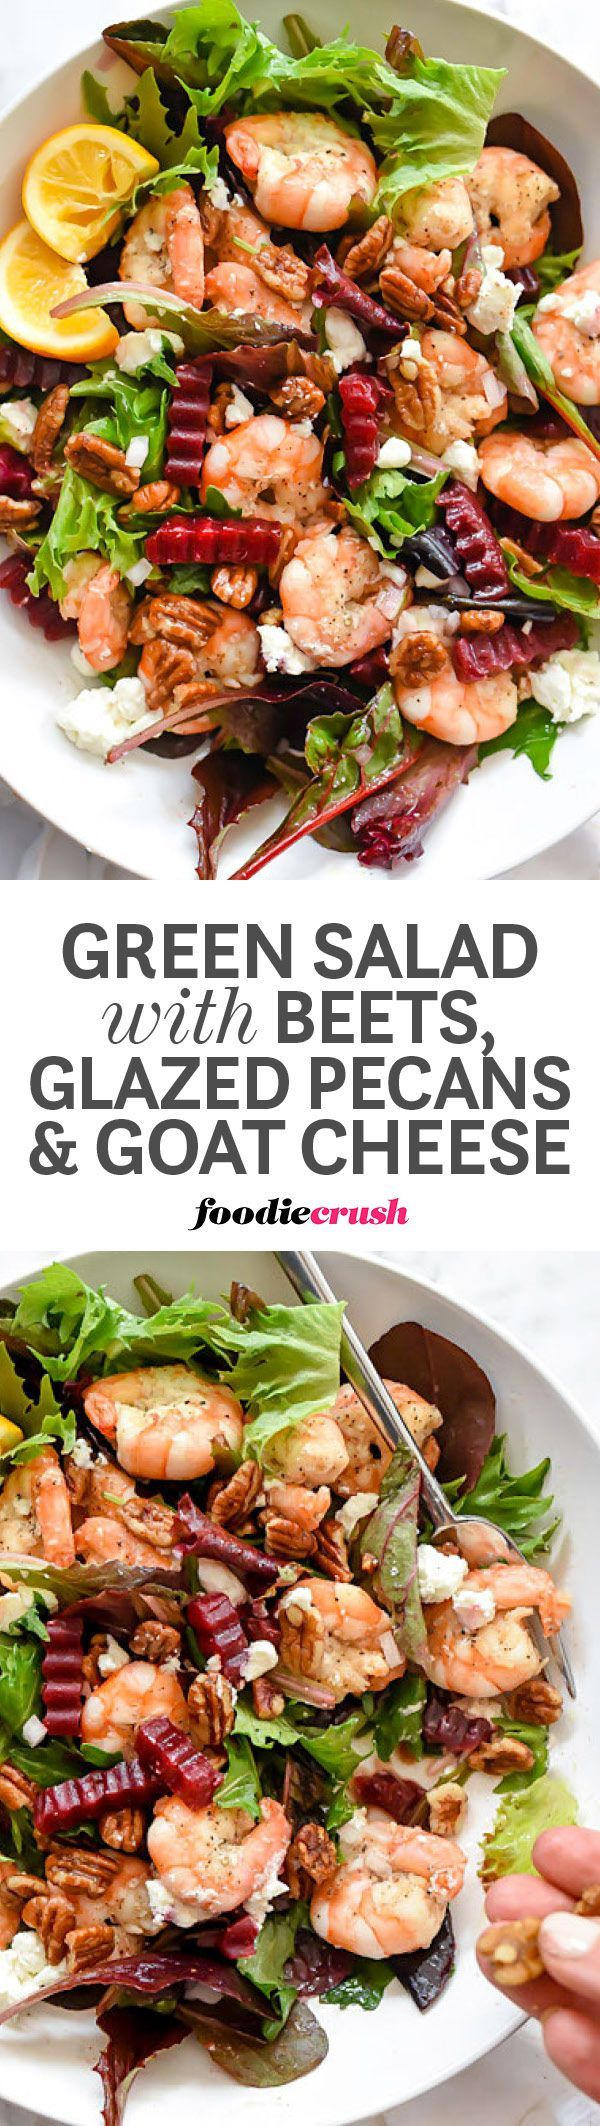 Sweet glazed pecans, roasted beets and goat cheese are added to fresh grilled shrimp over fresh spring lettuces to create a healthy meal in one bowl | http://foodiecrush.com #salad #shrimp